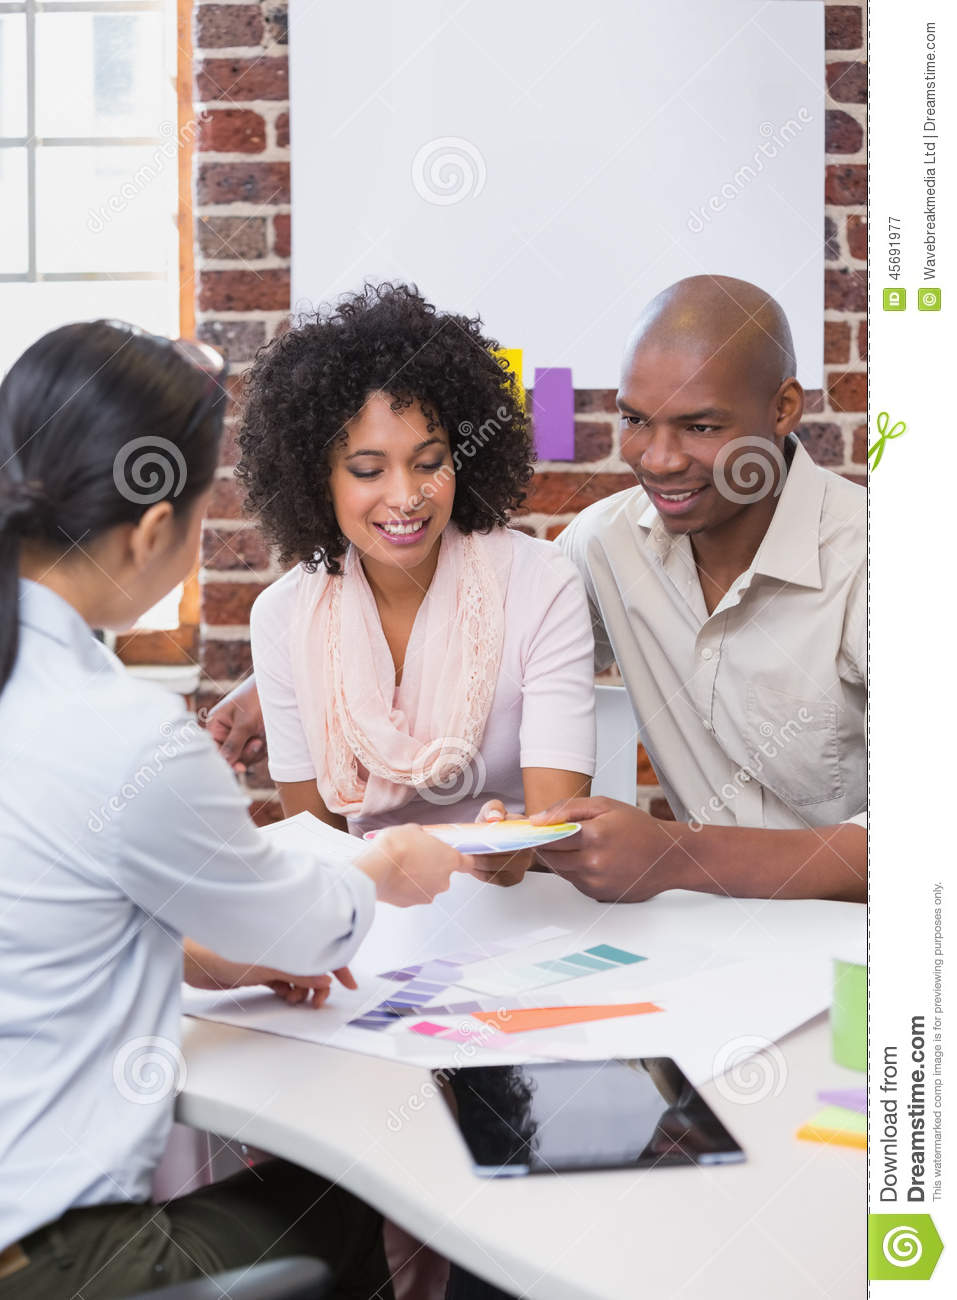 Interior Designers With Clients Interior Designer Speaking With Clients Stock Photo  Image 45691977